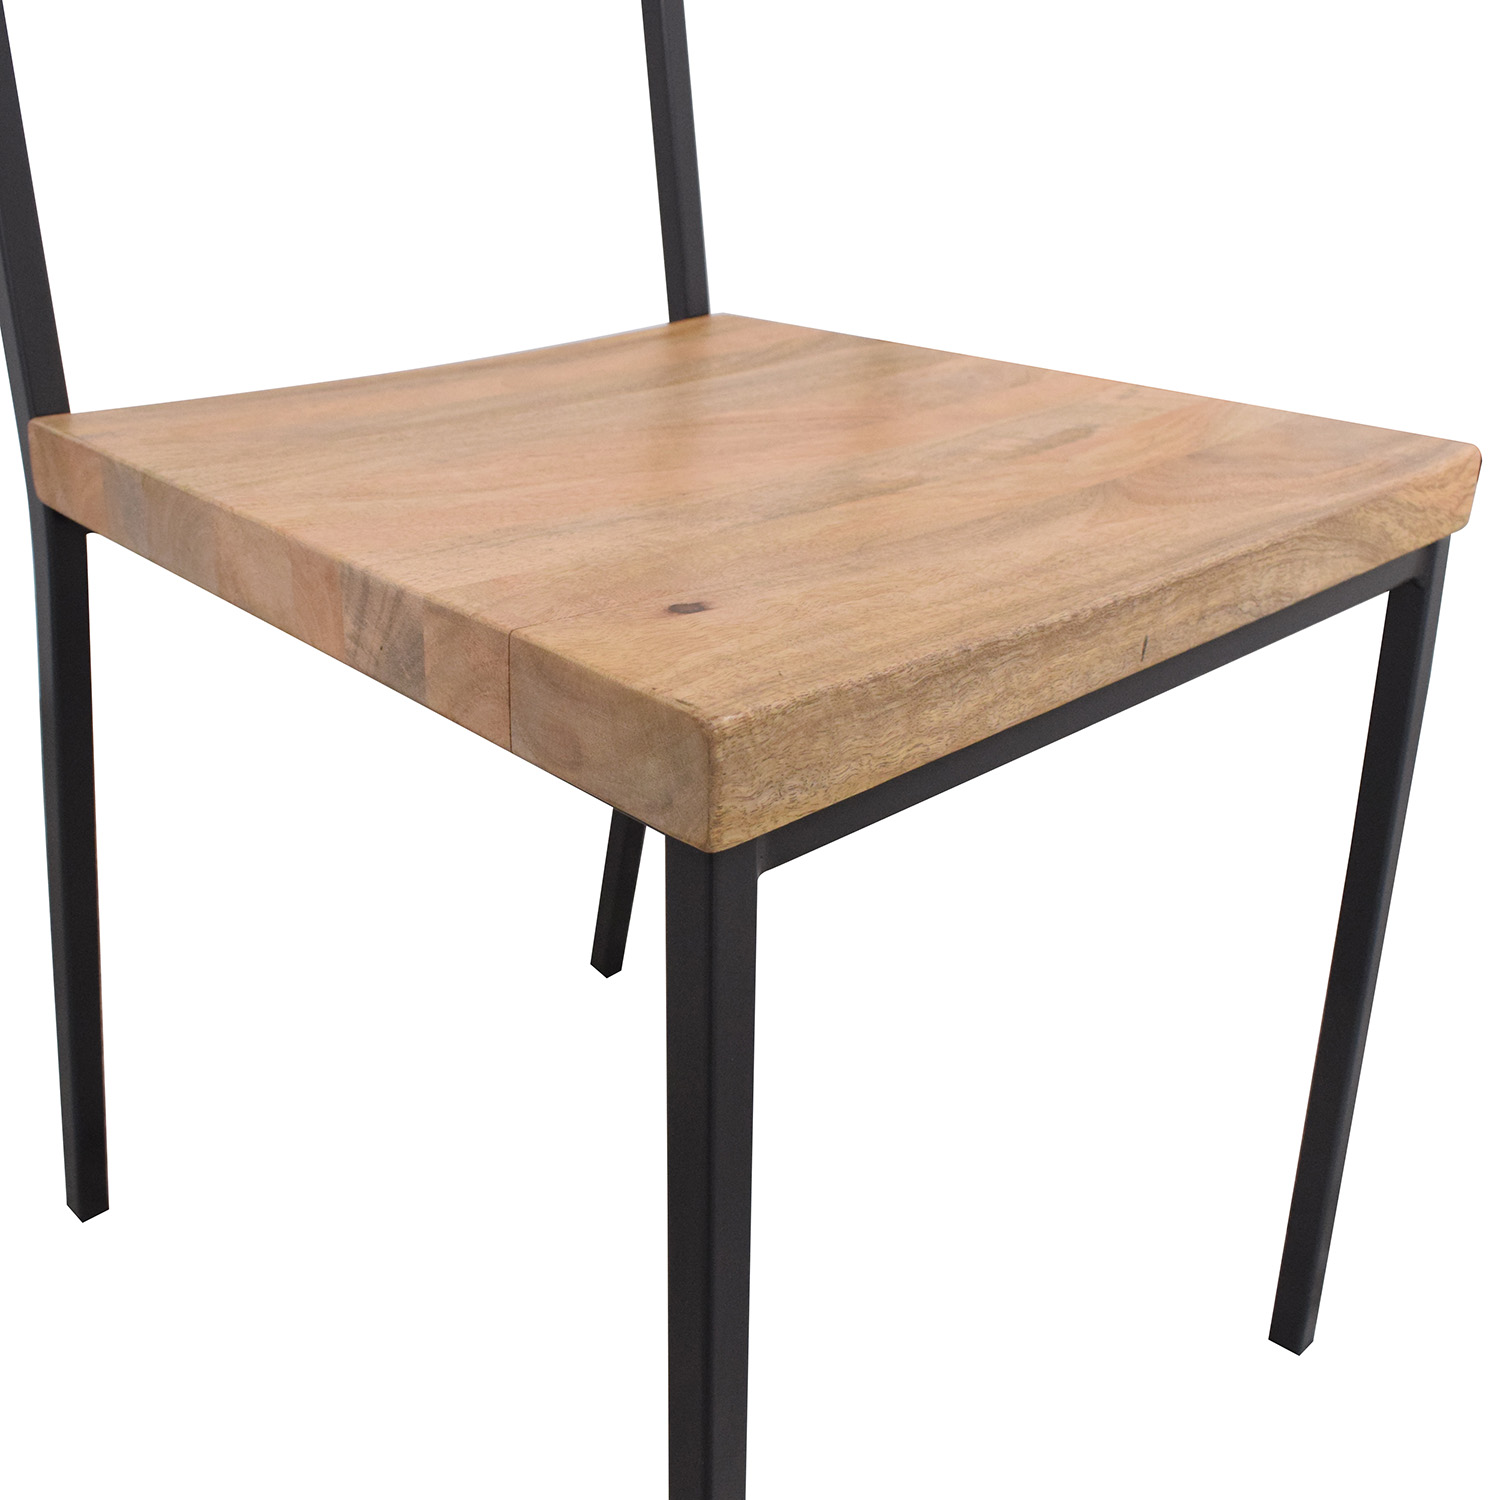 West Elm West Elm Rustic Dining Chairs on sale